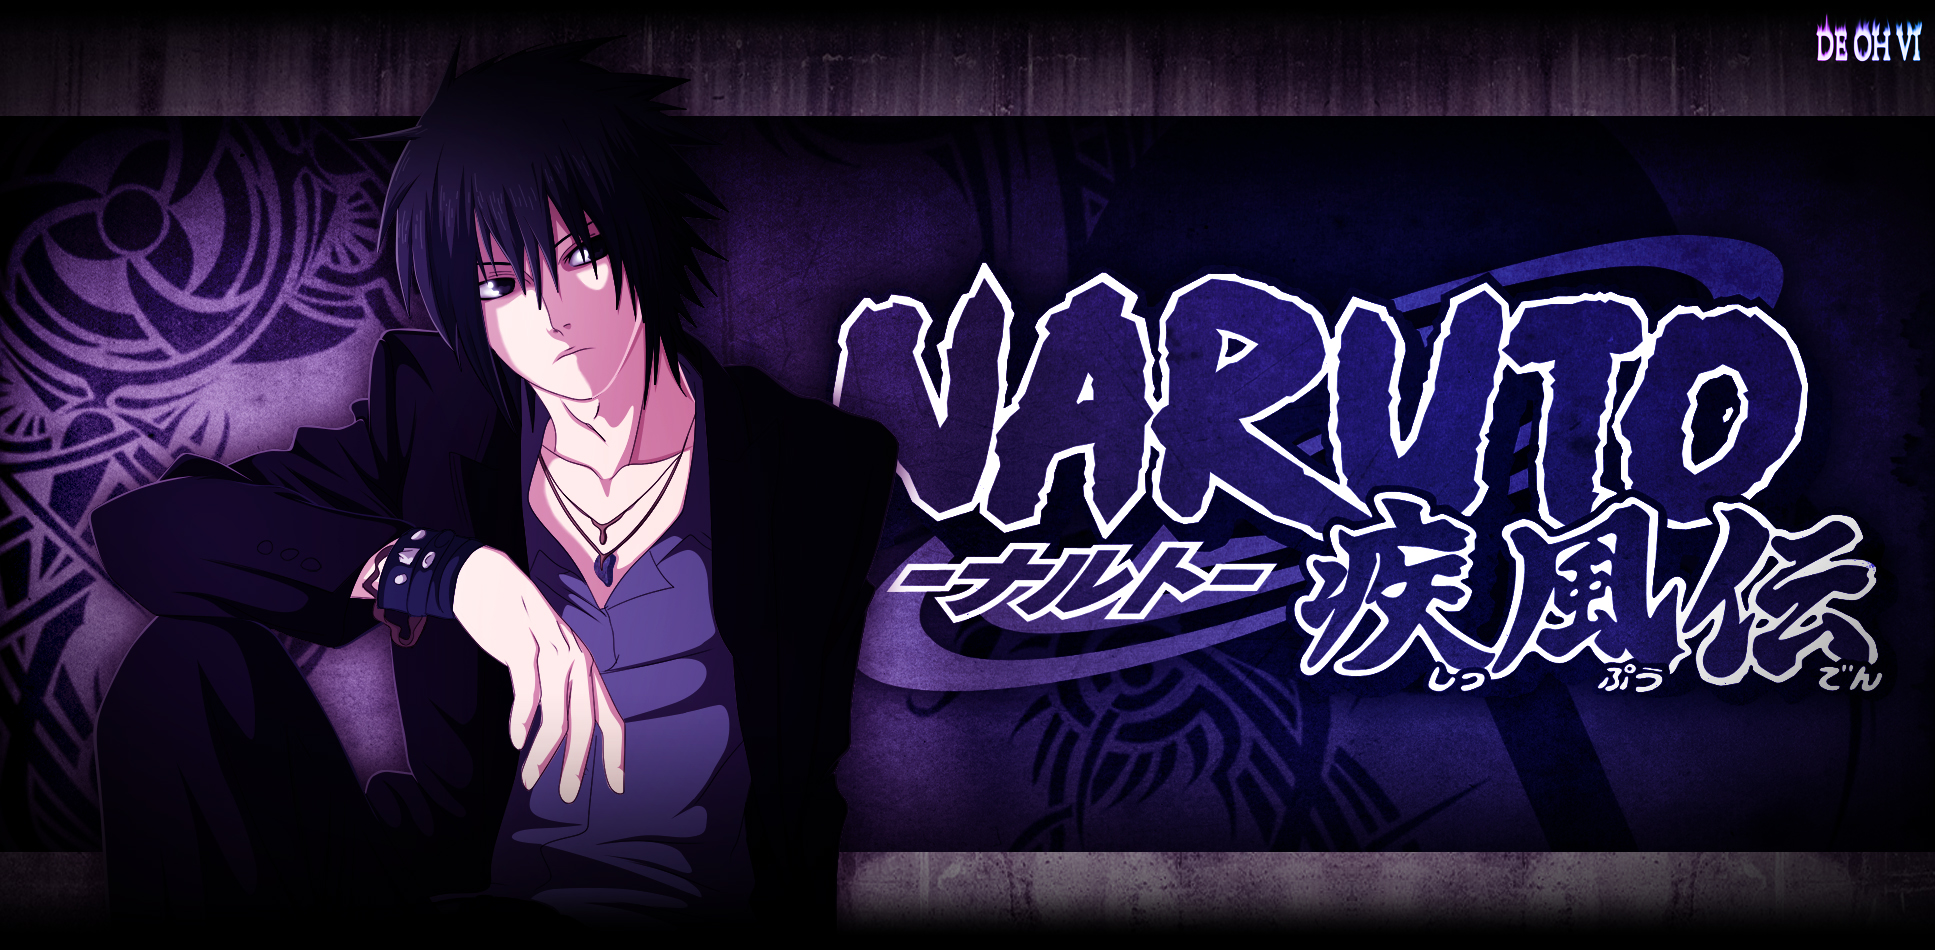 Sasuke Wallpaper Background HD